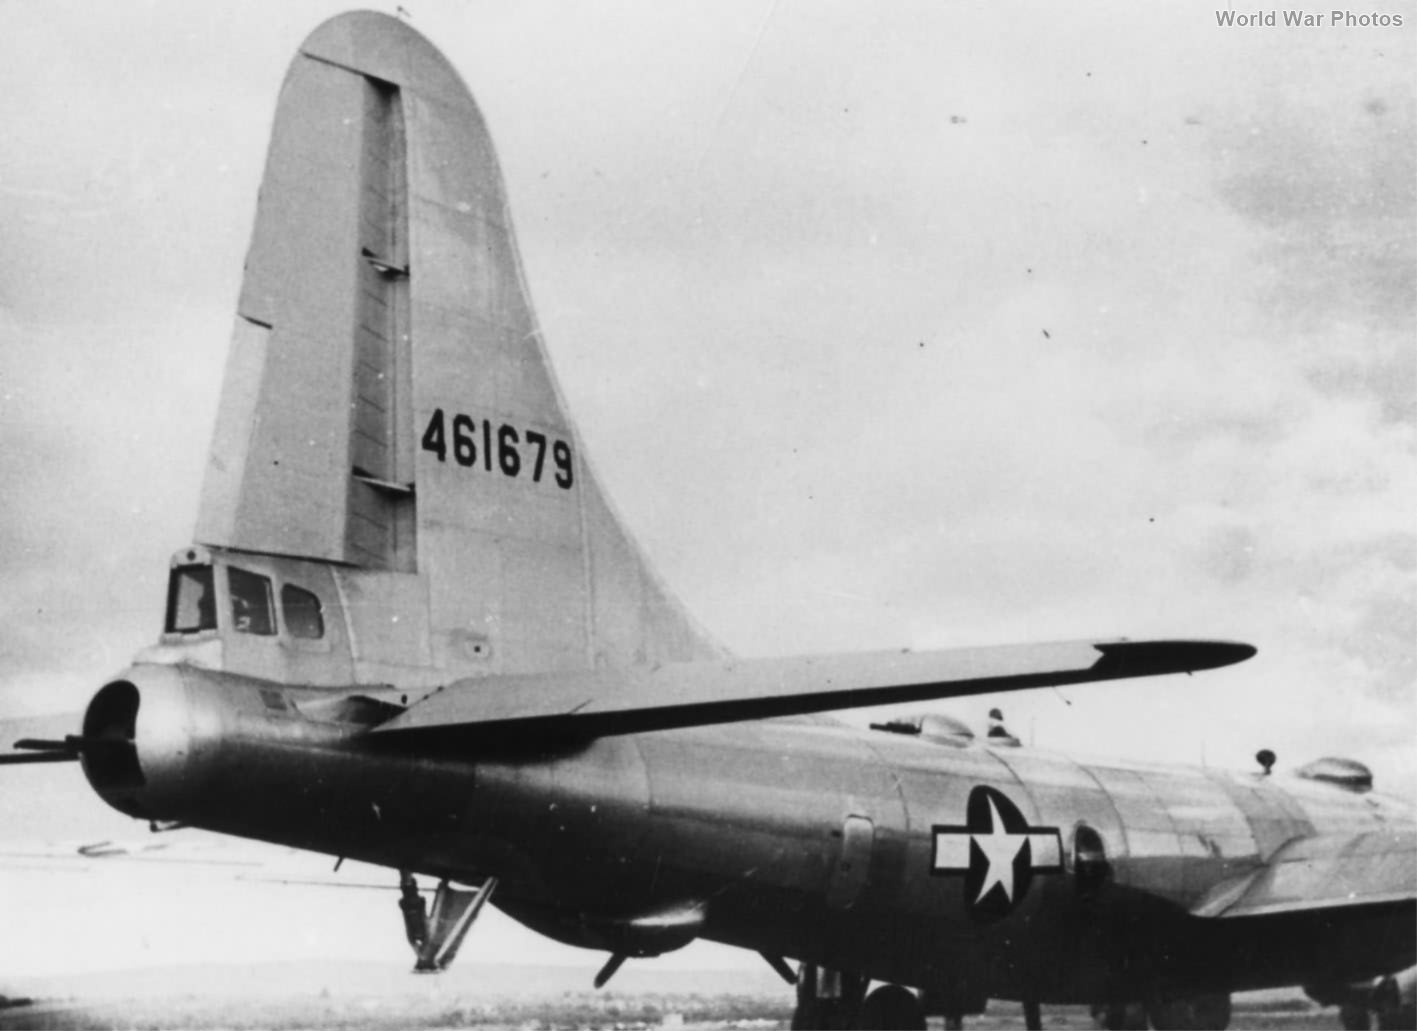 B-29 44-61679 of the 6th BG